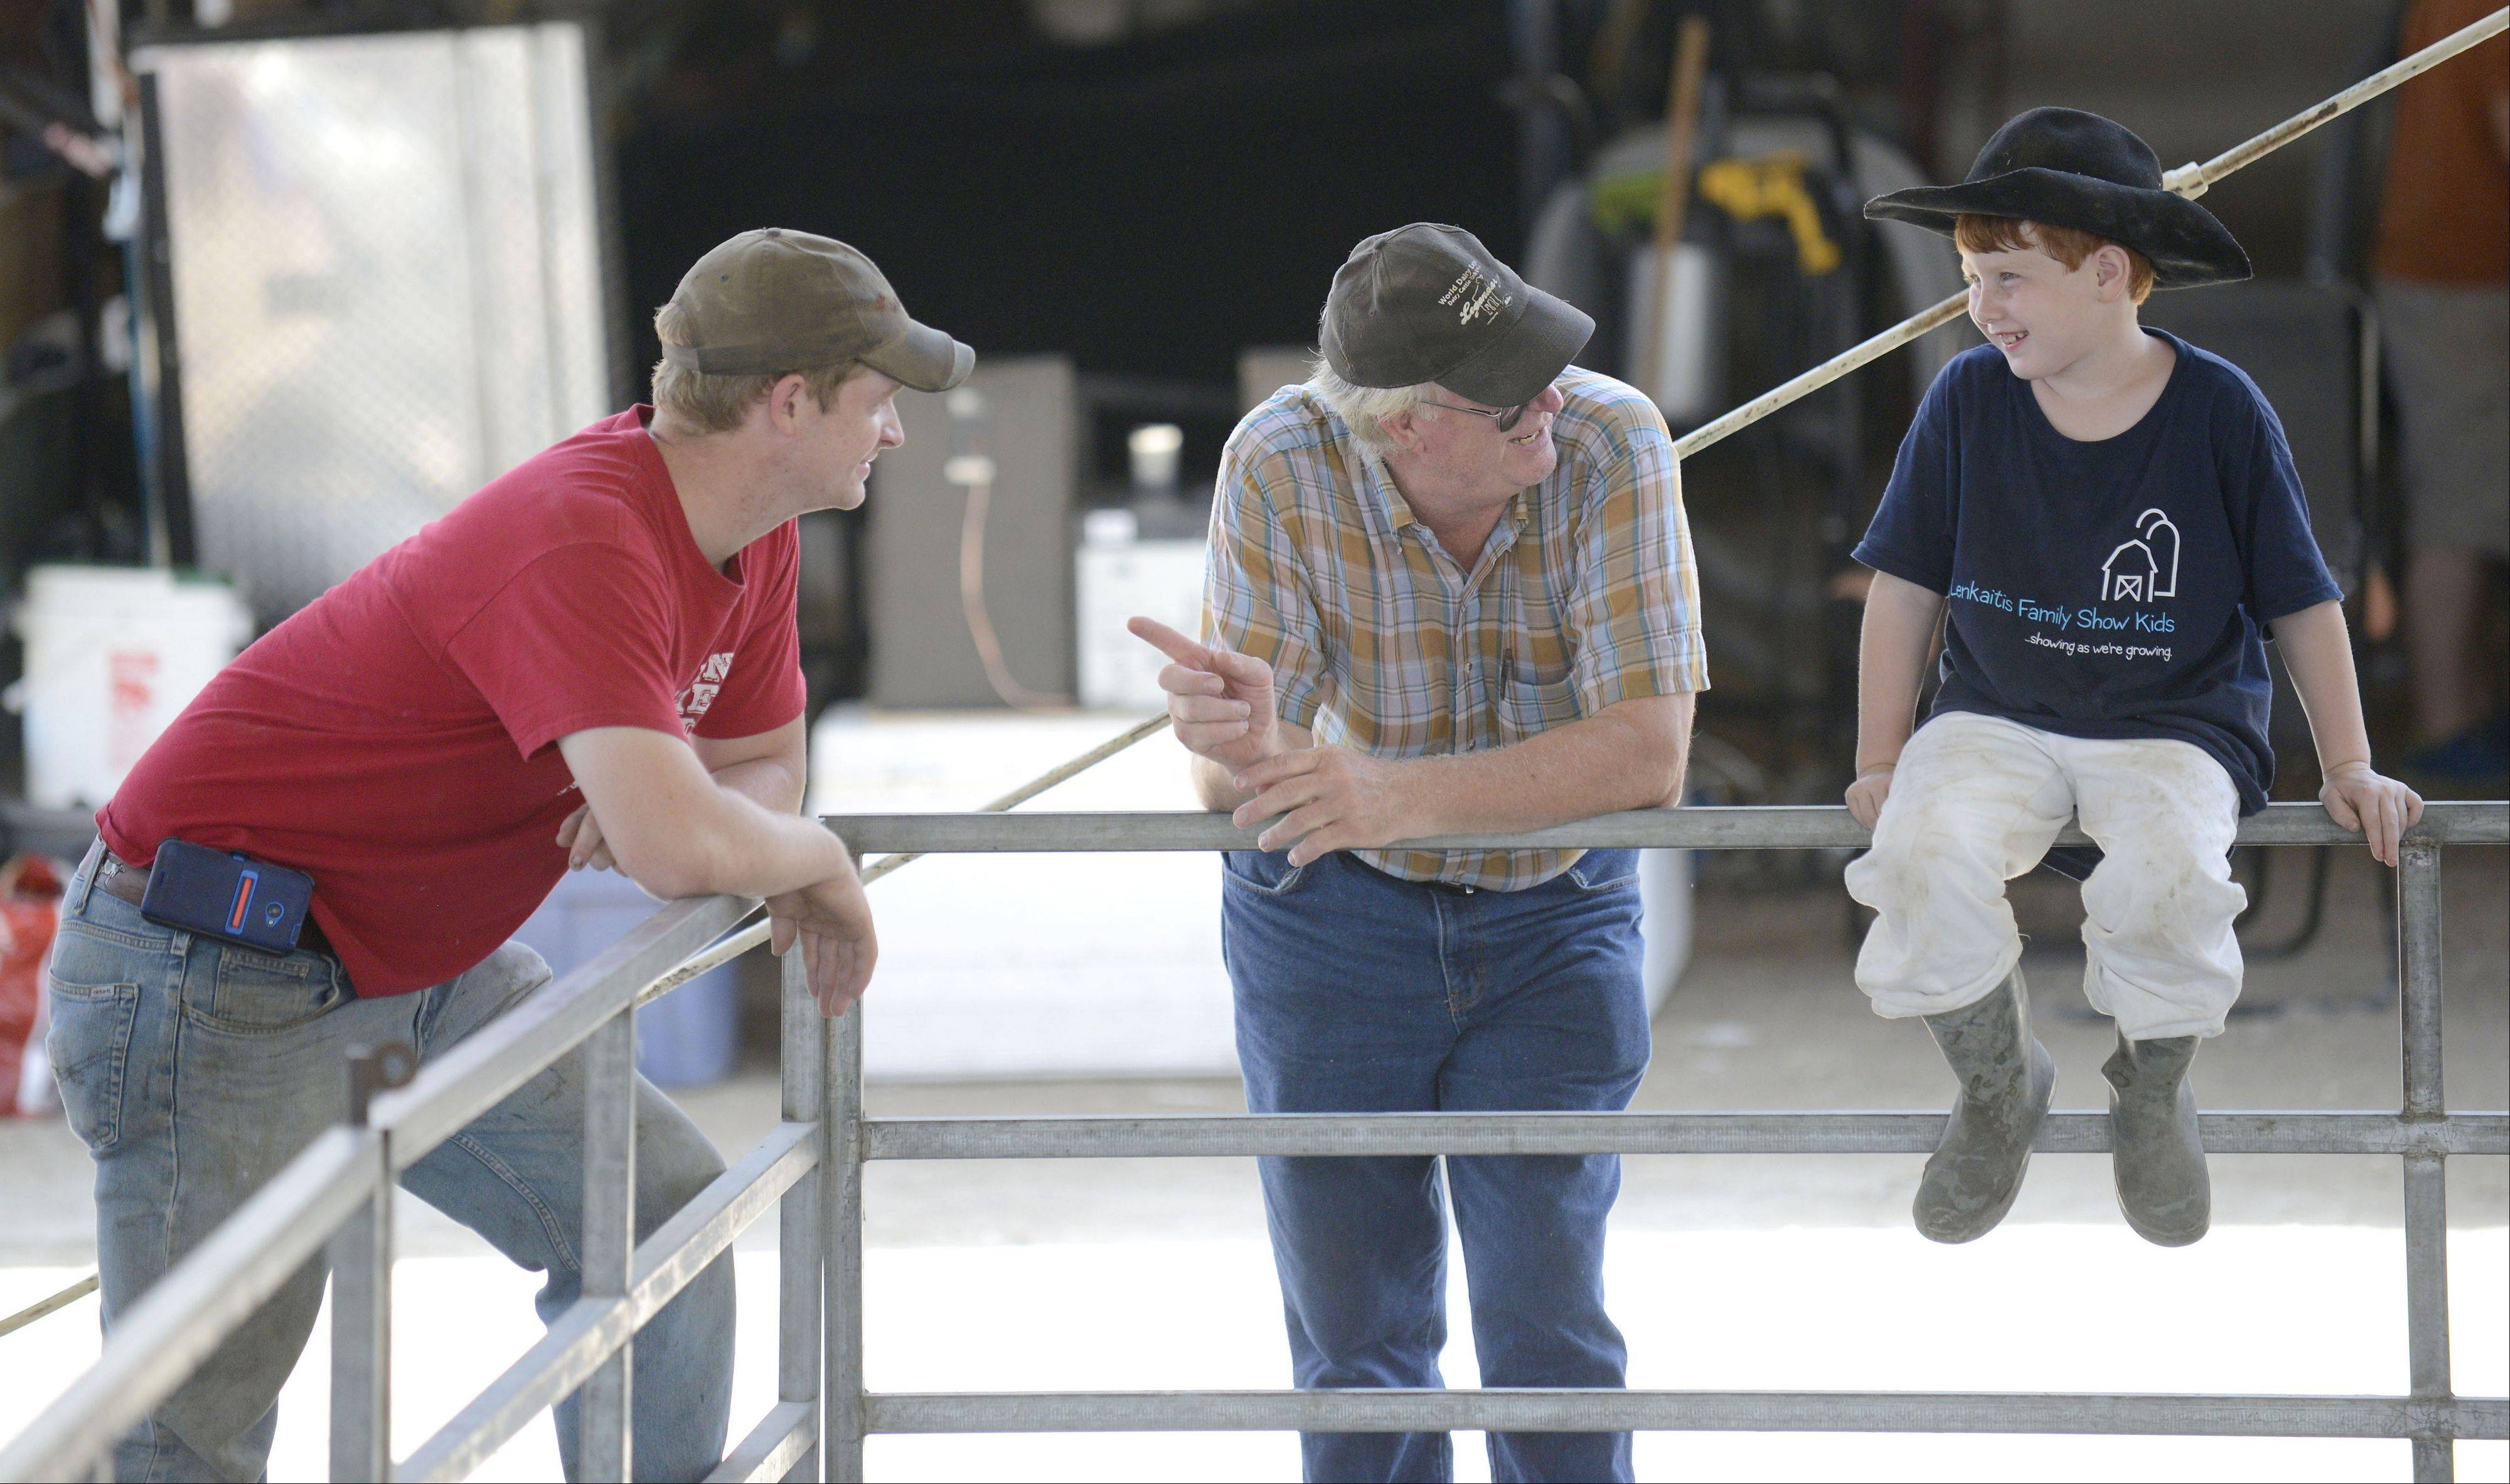 Philip Shanks, left, of Garden Prairie, Ill., listens to his father, David, tell Caden Lenkaitis, 7, of Campton Hills about how Philip started showing at fairs, including the Kane County Fair, when he was about 4 years old. The families are longtime friends.